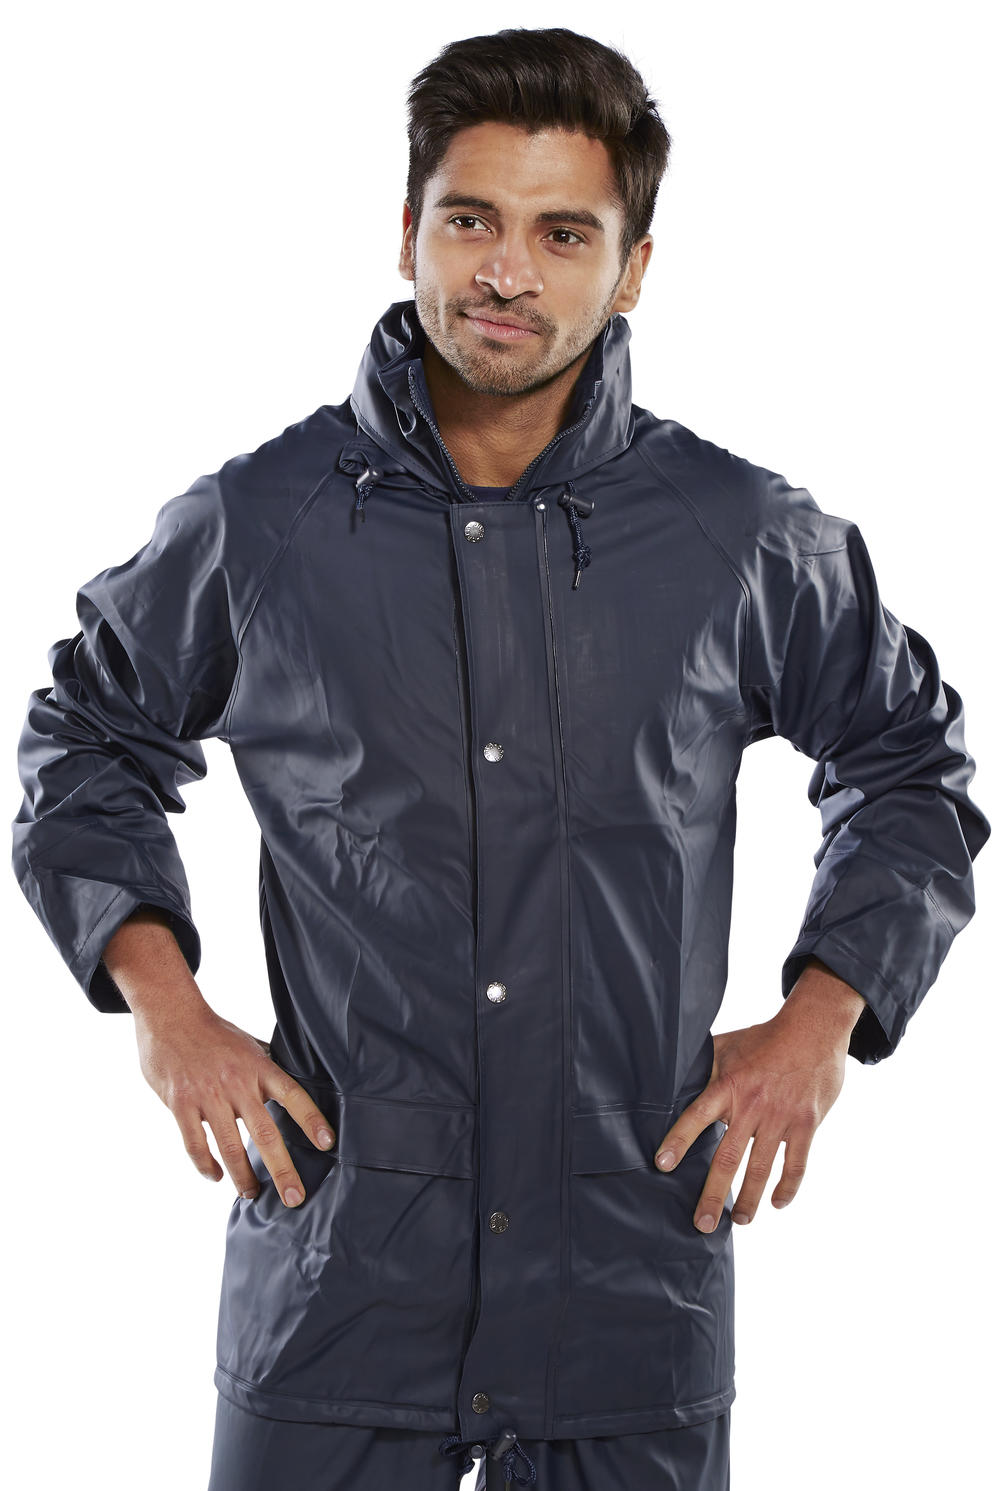 SUPER B-DRI JACKET - SBDJ